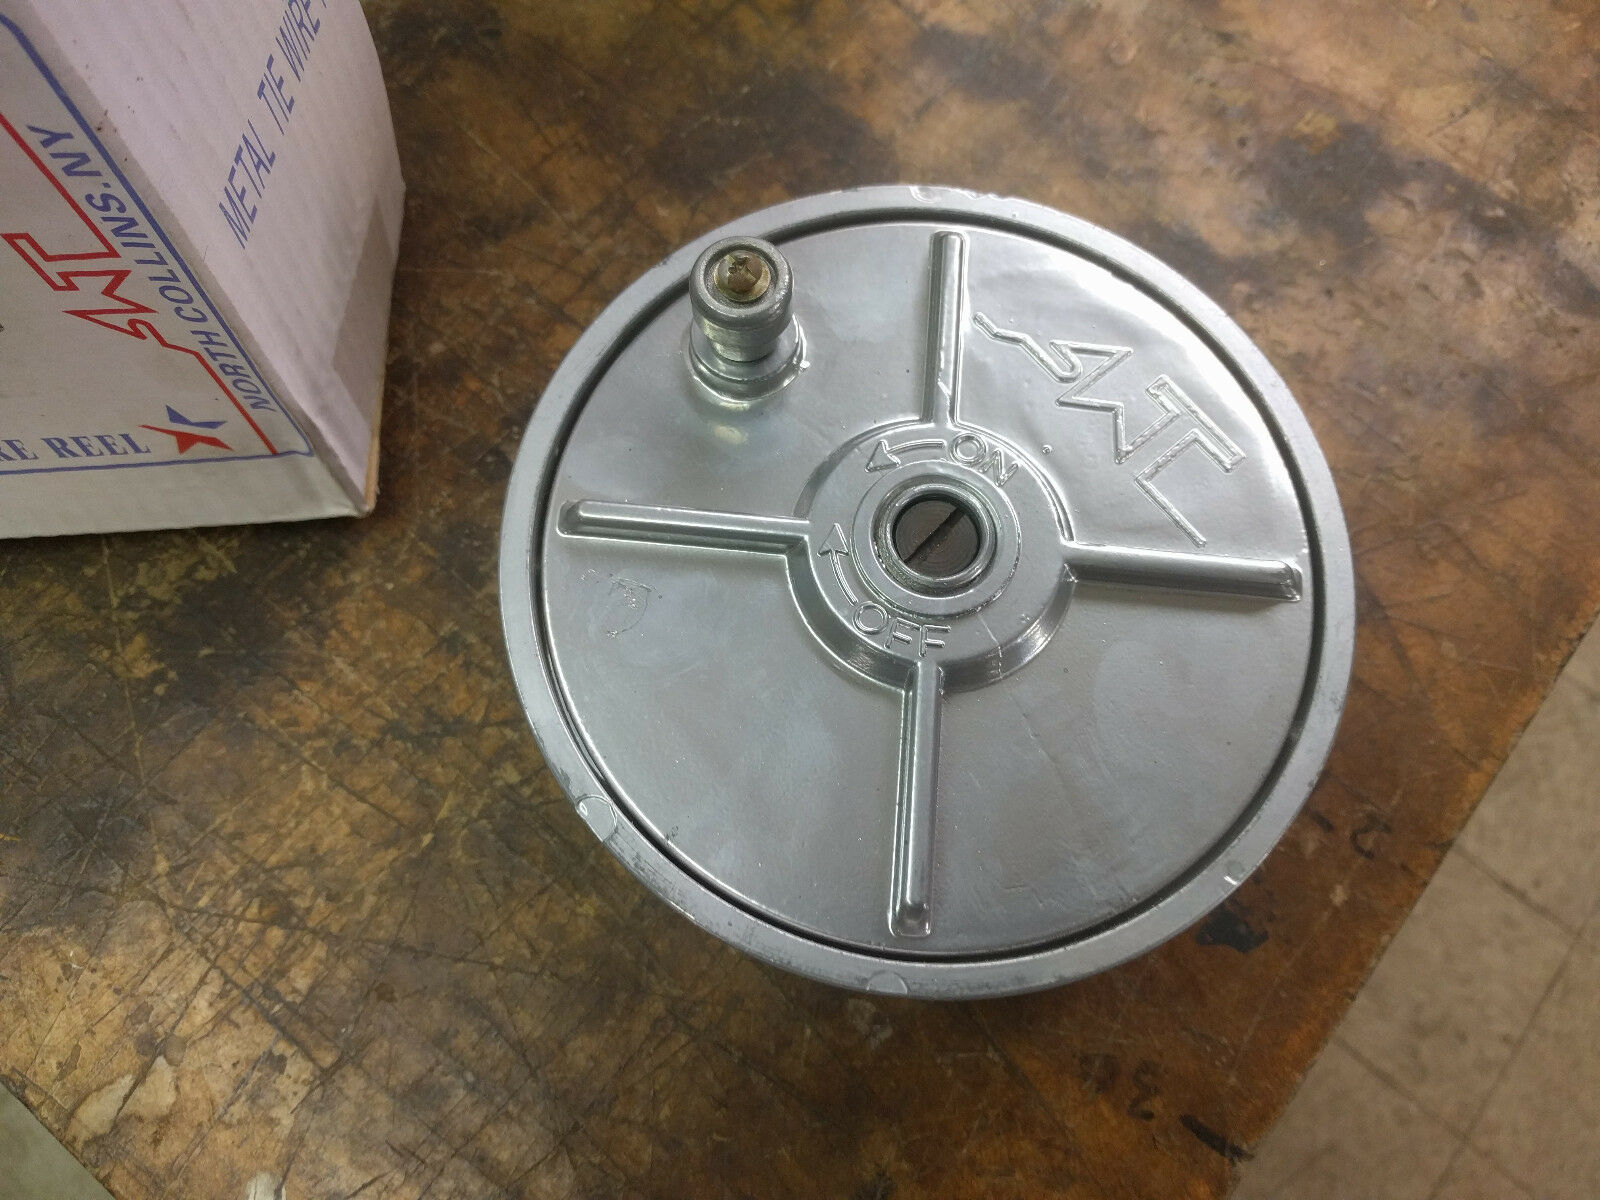 METAL TIE WIRE reel, trapping, construction, concrete - $19.95 ...